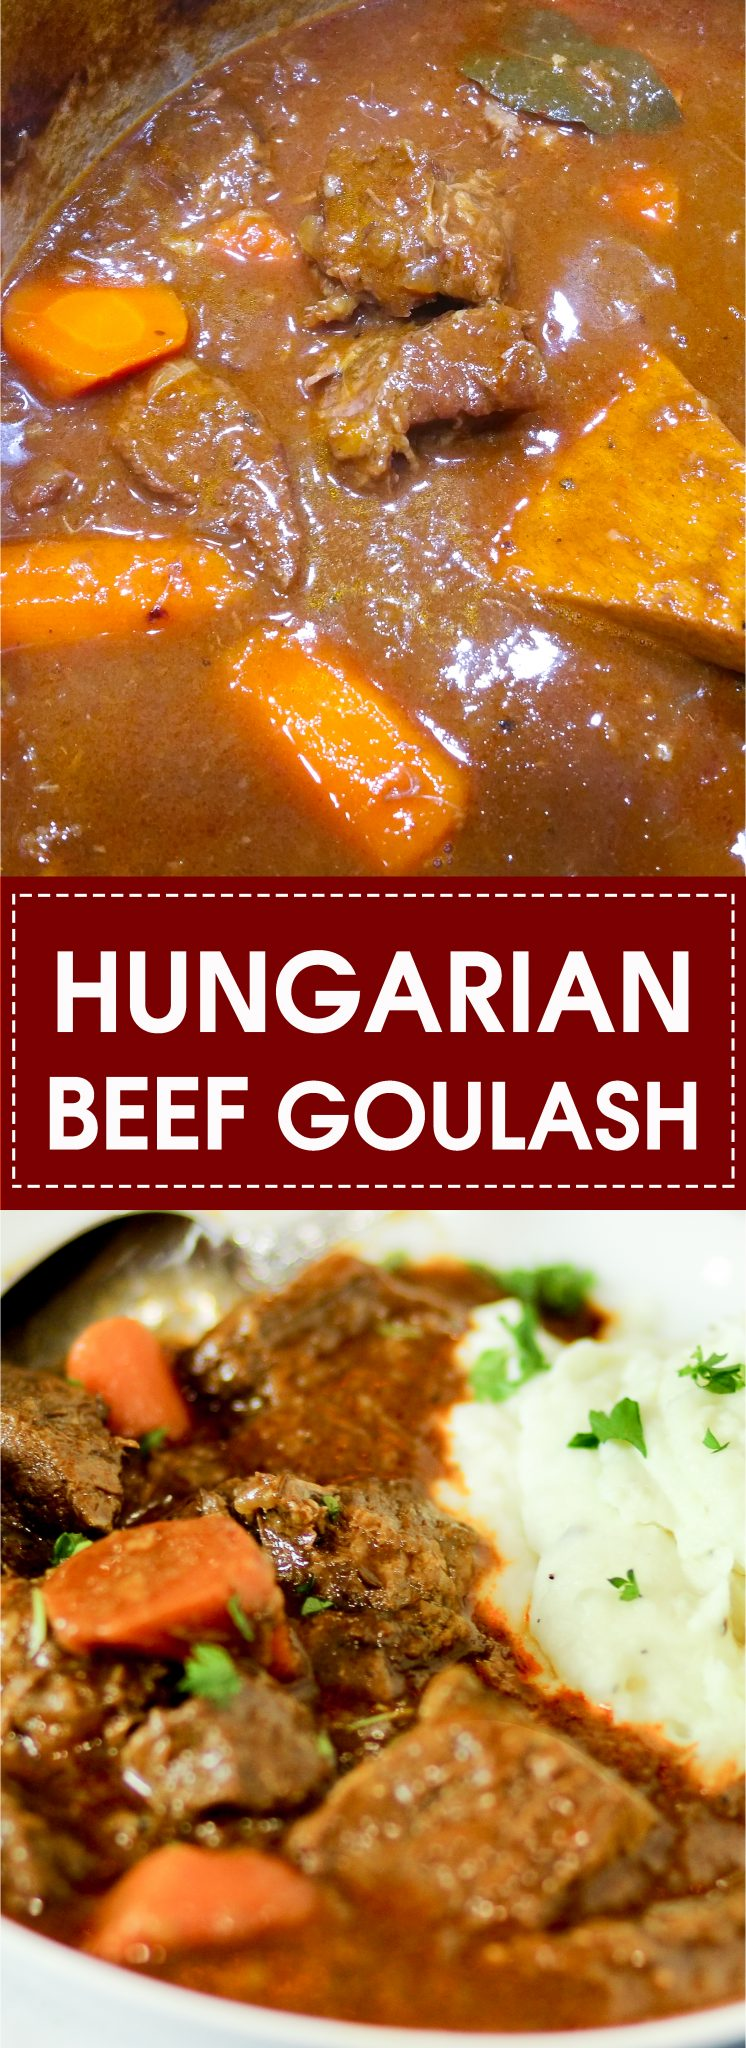 Hungarian Beef Goulash – Homemade Italian Cooking